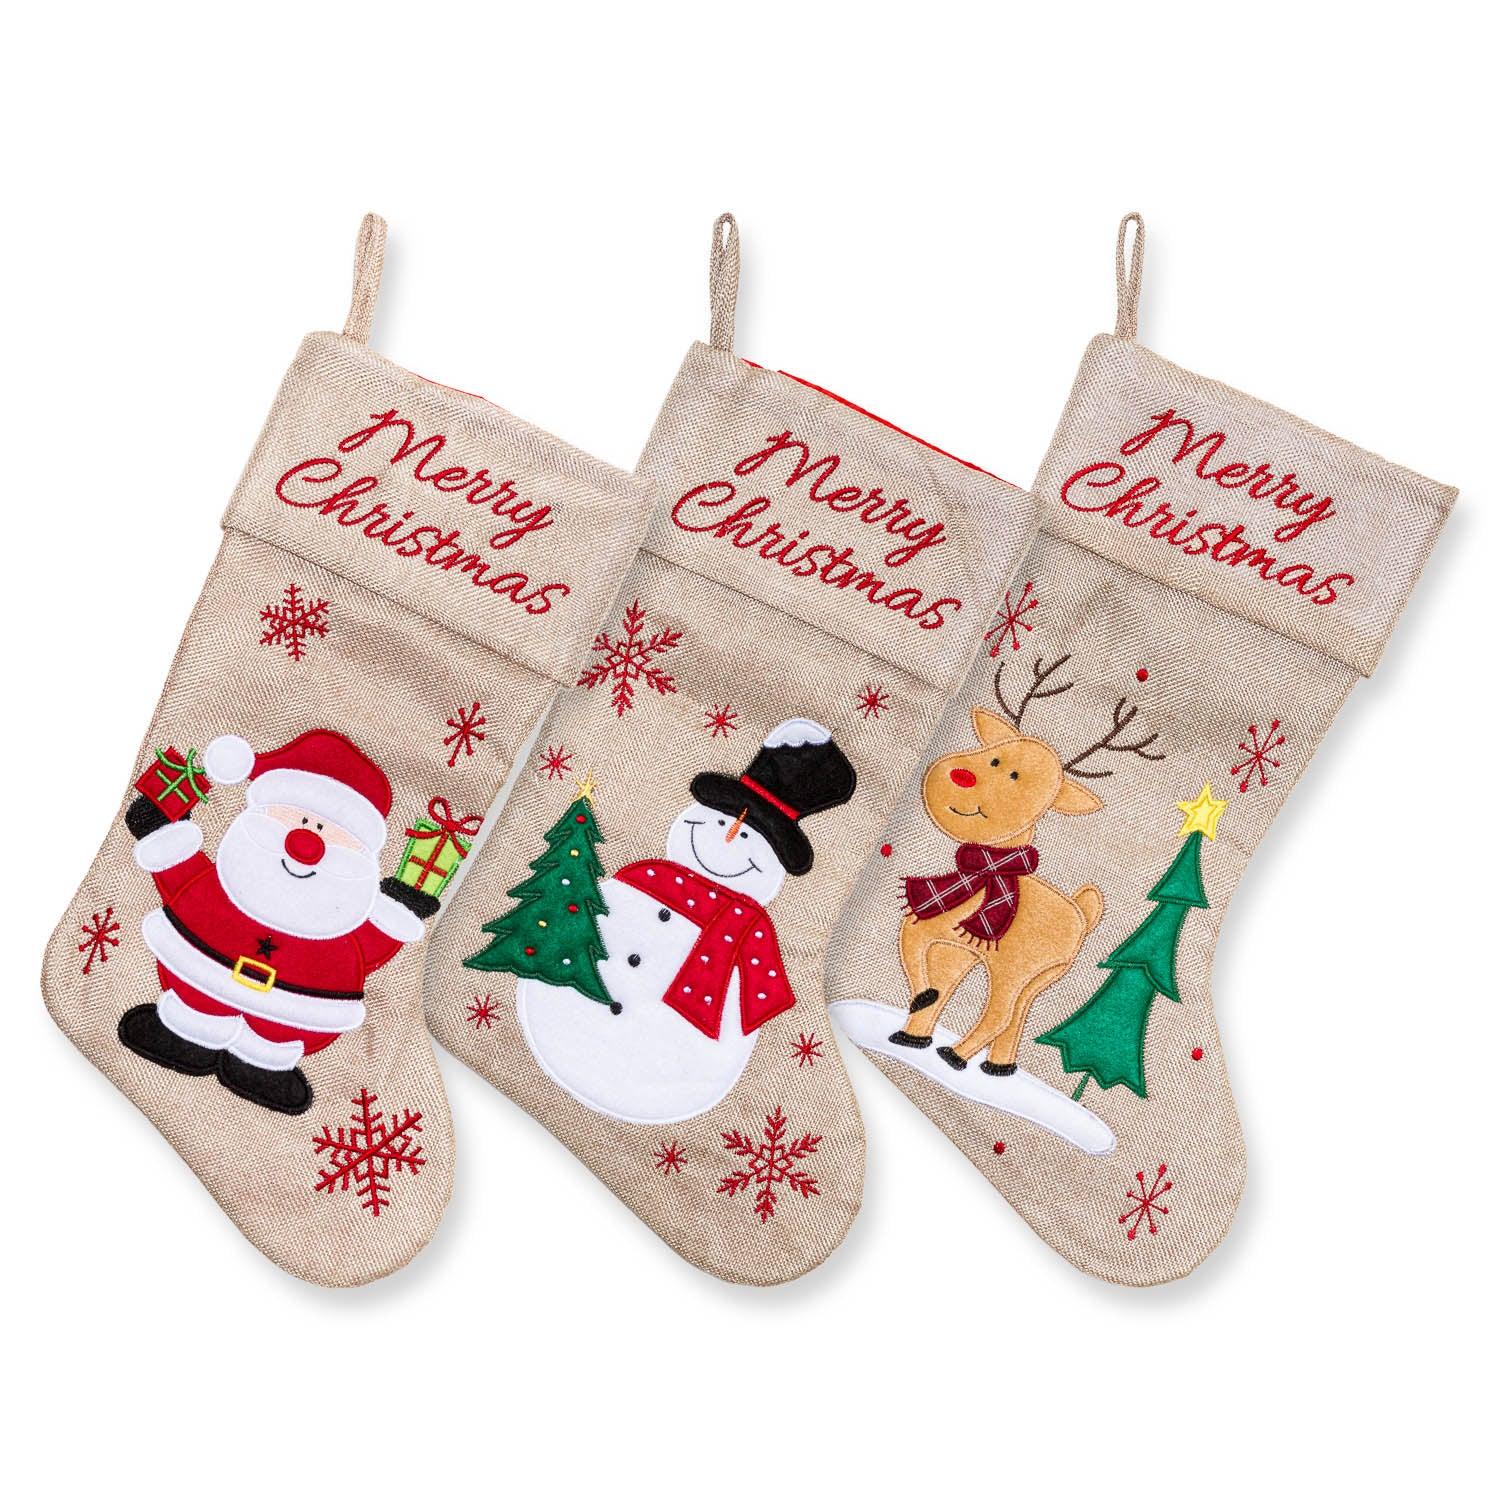 "Large Burlap Santa Classic 3D Christmas Stockings - 18"" Santa Toy Stockings"